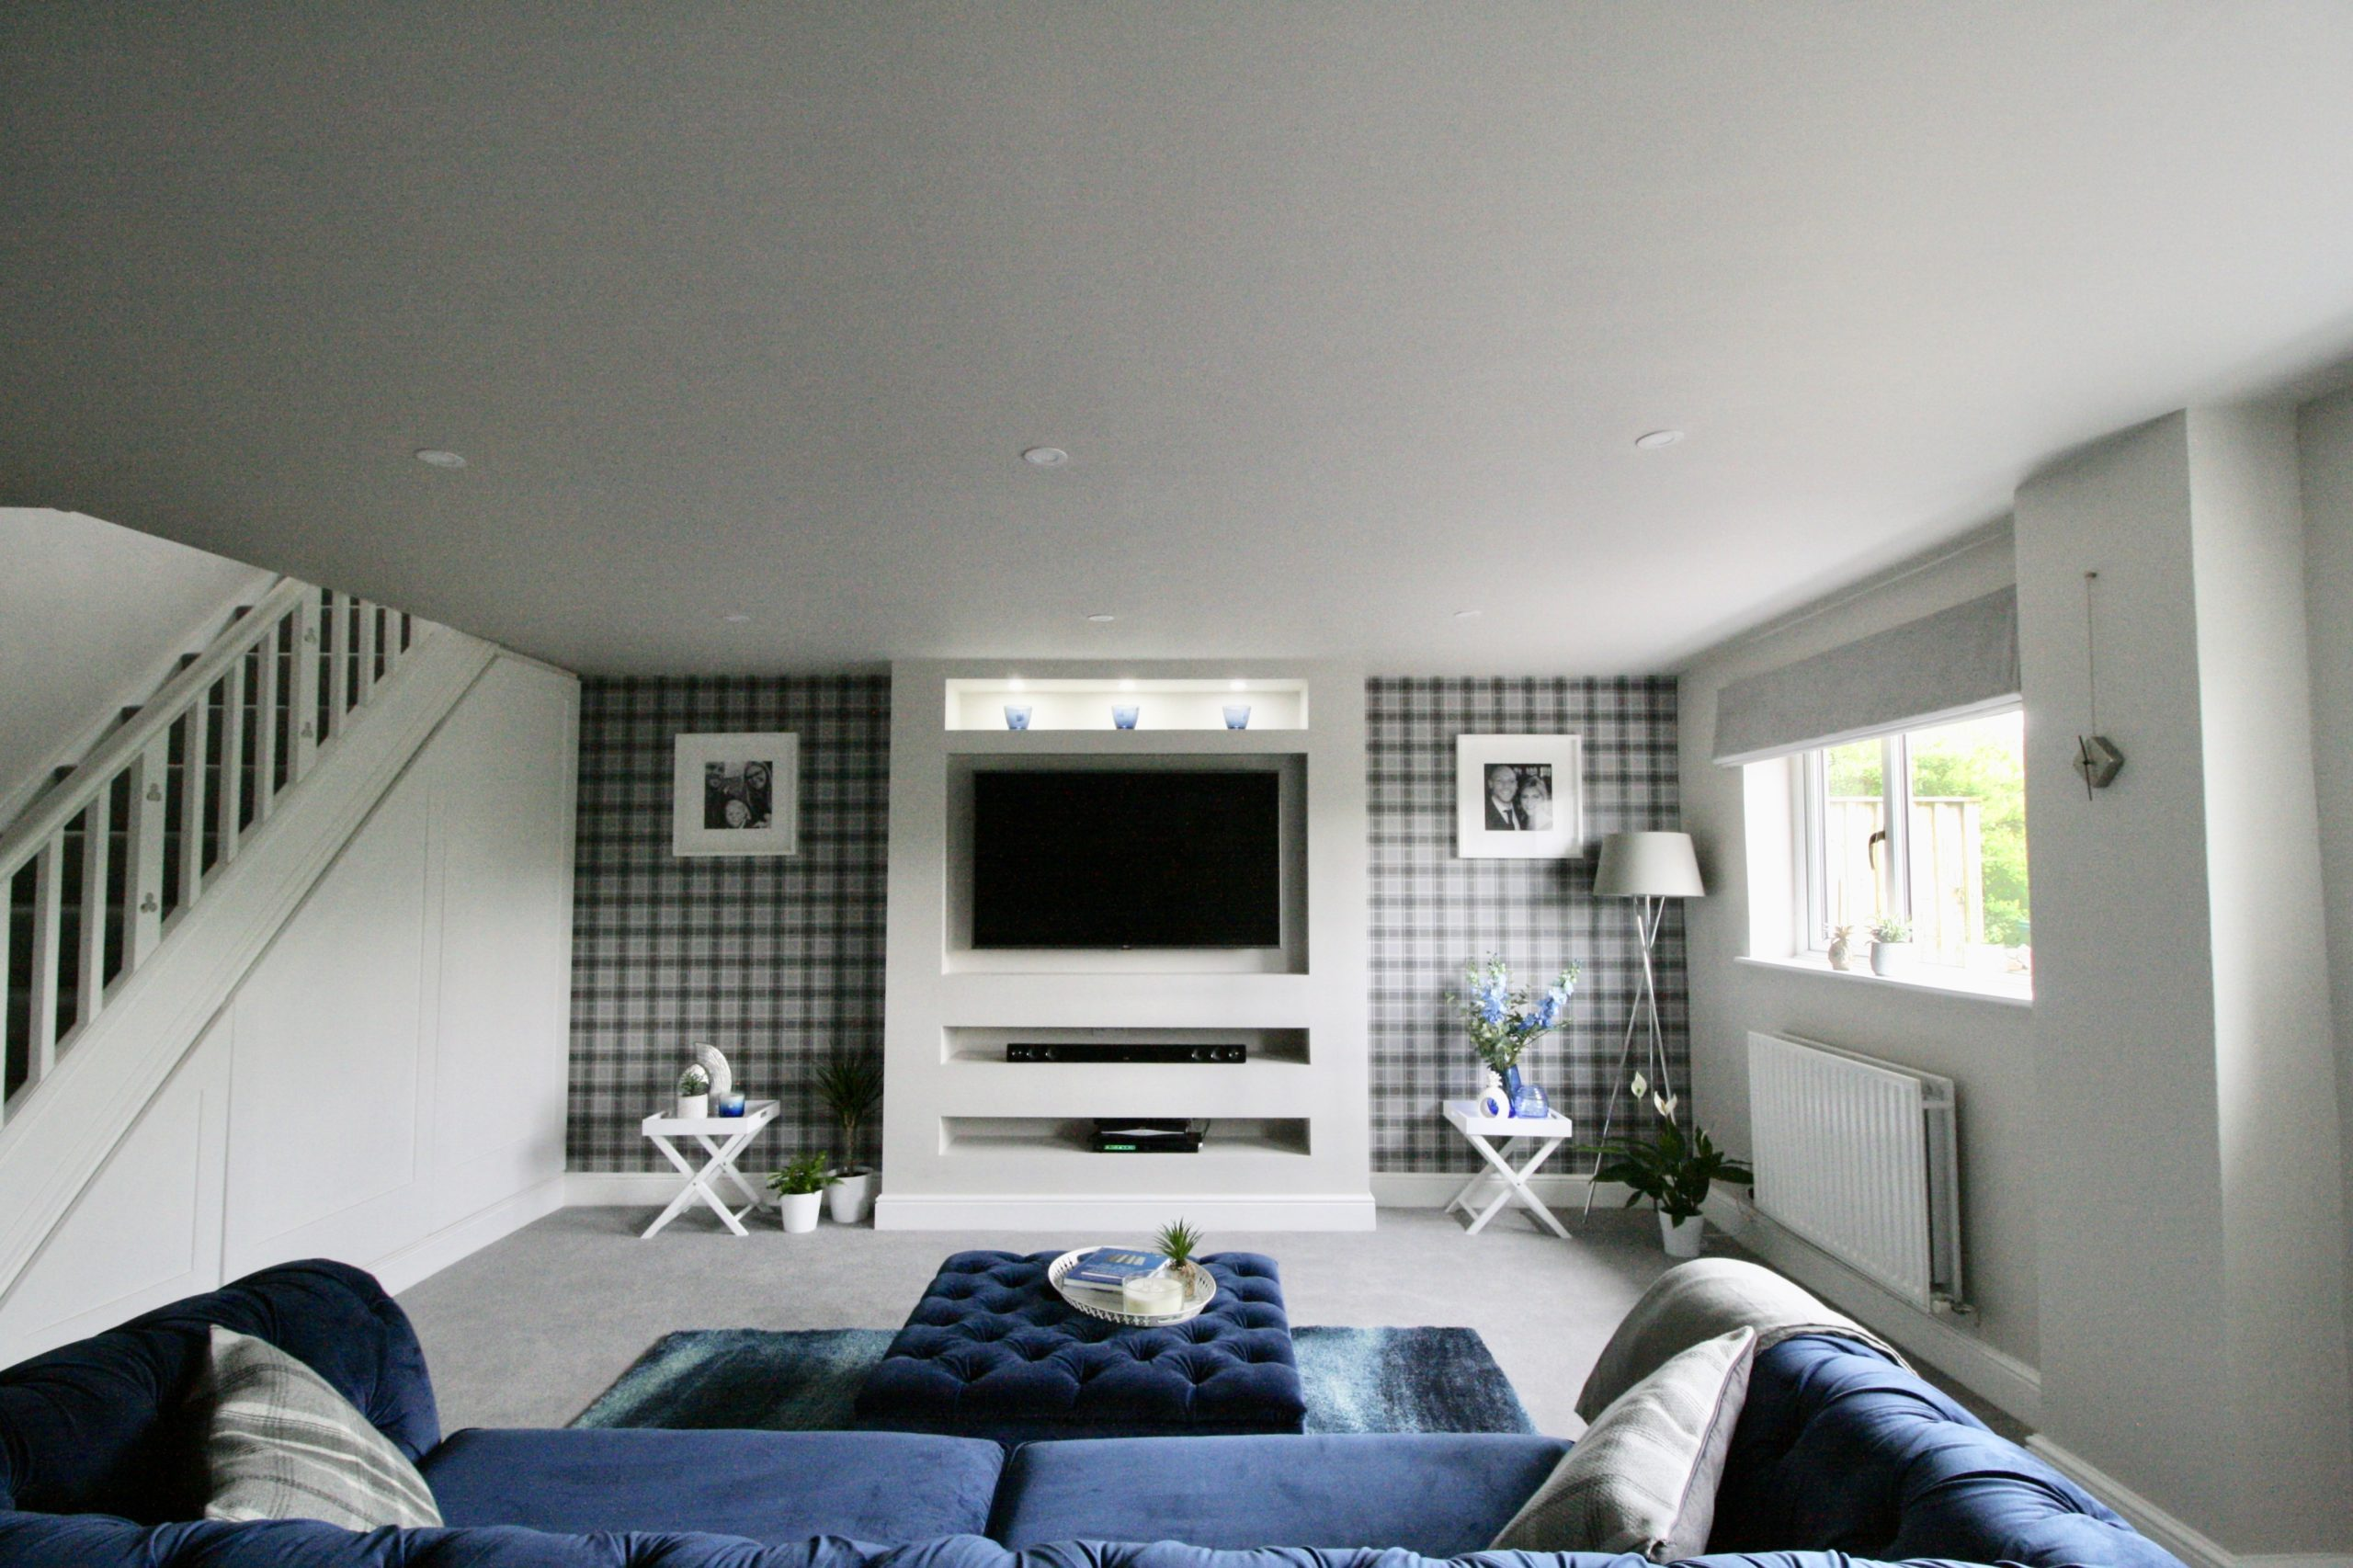 Media wall in grey TV room with wall mounted concealed TV and concealed lighting